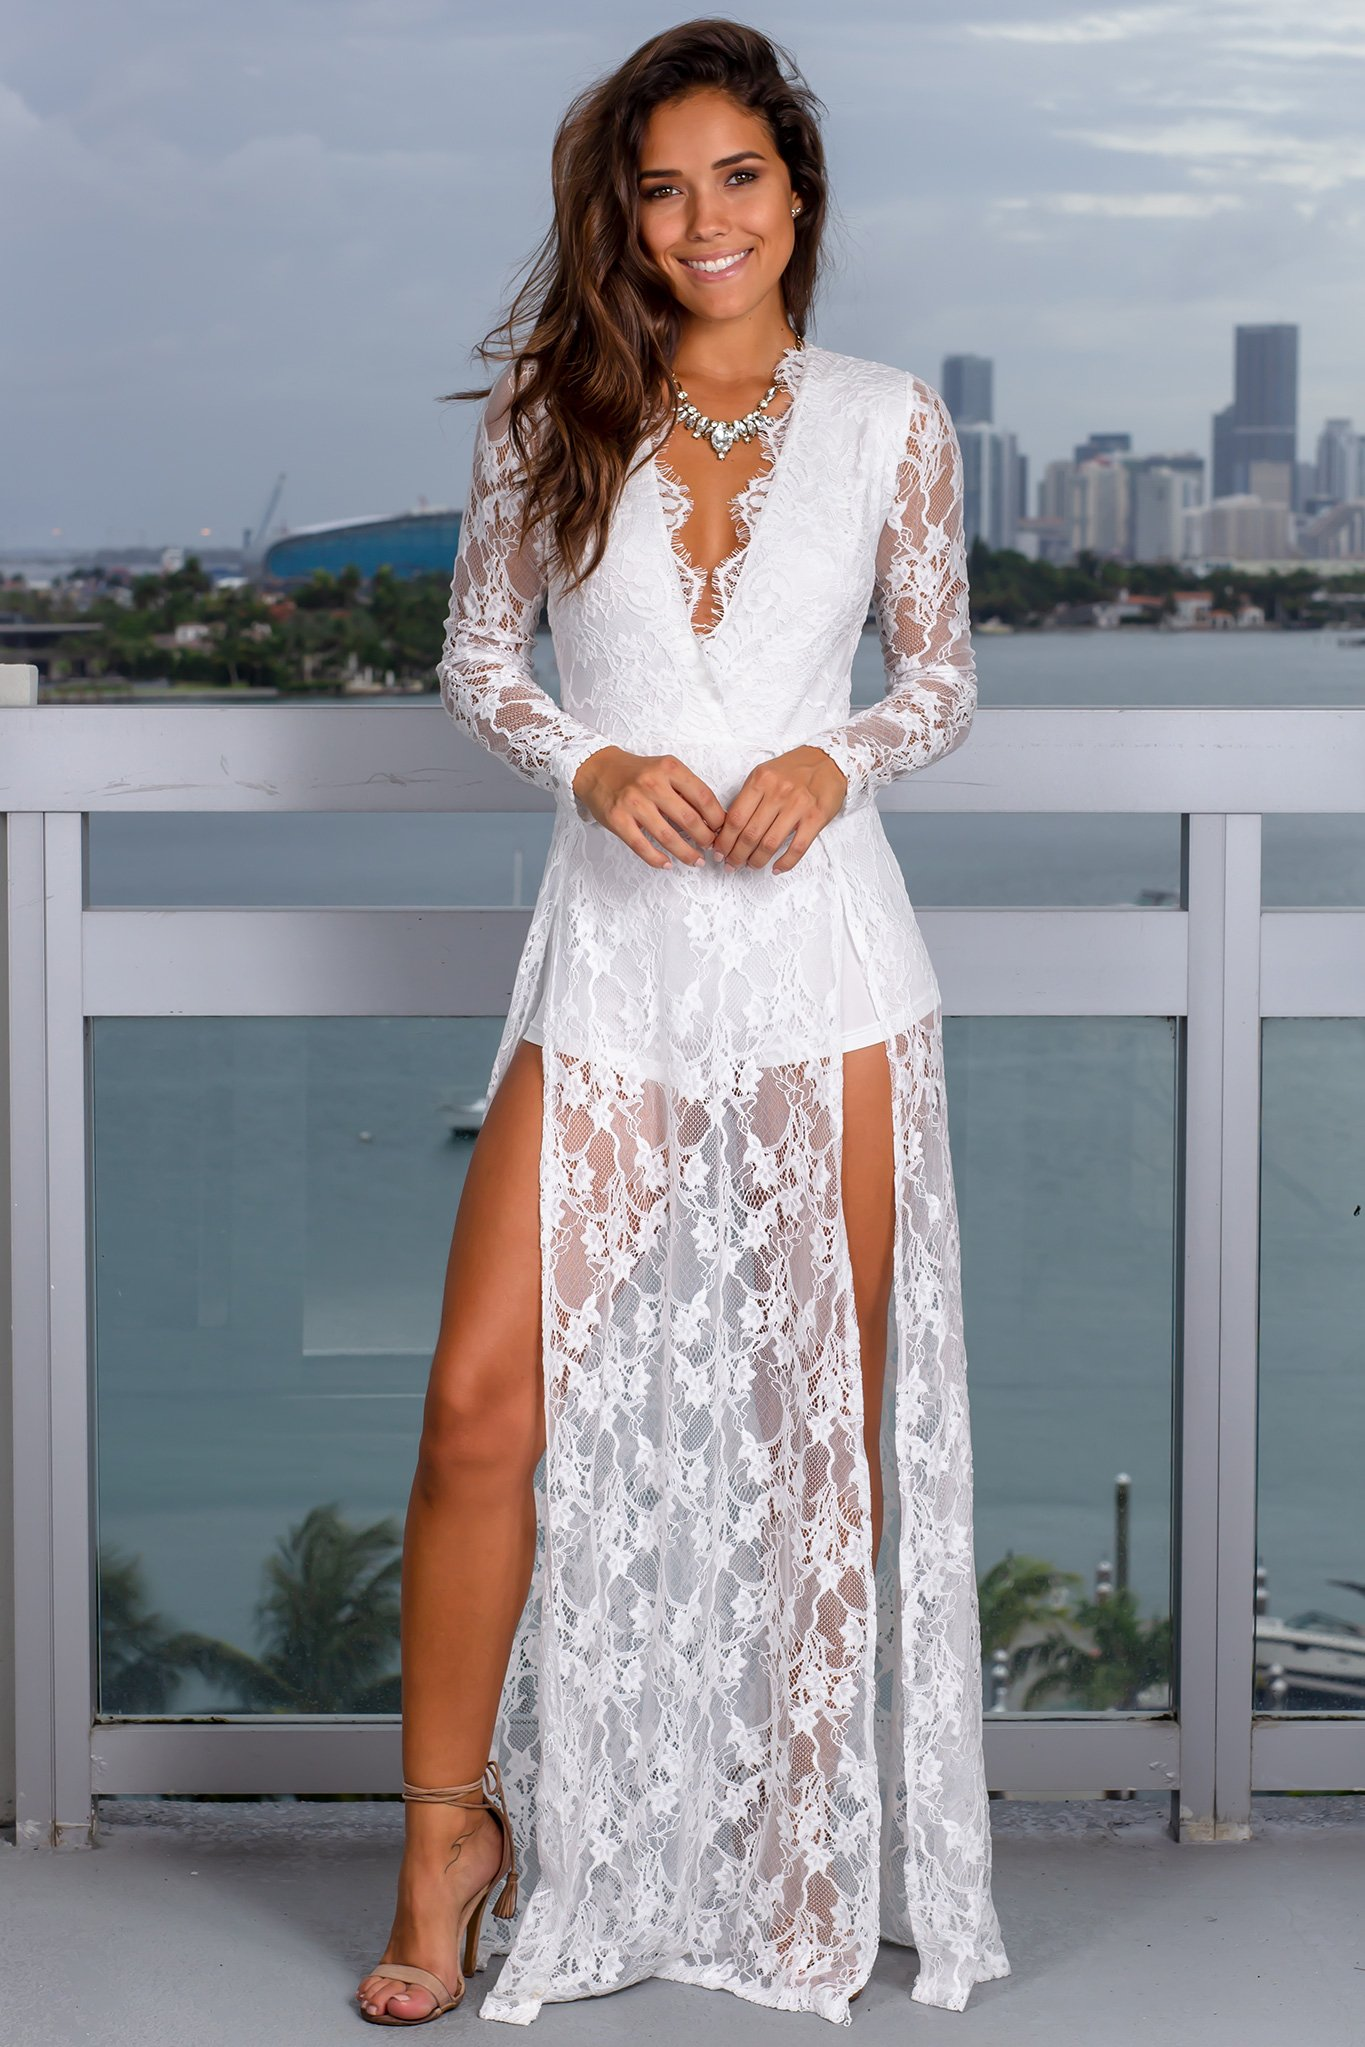 White Lace Maxi Romper With Slits Lace Maxi Romper White Lace Maxi Lace Maxi [ 2047 x 1365 Pixel ]